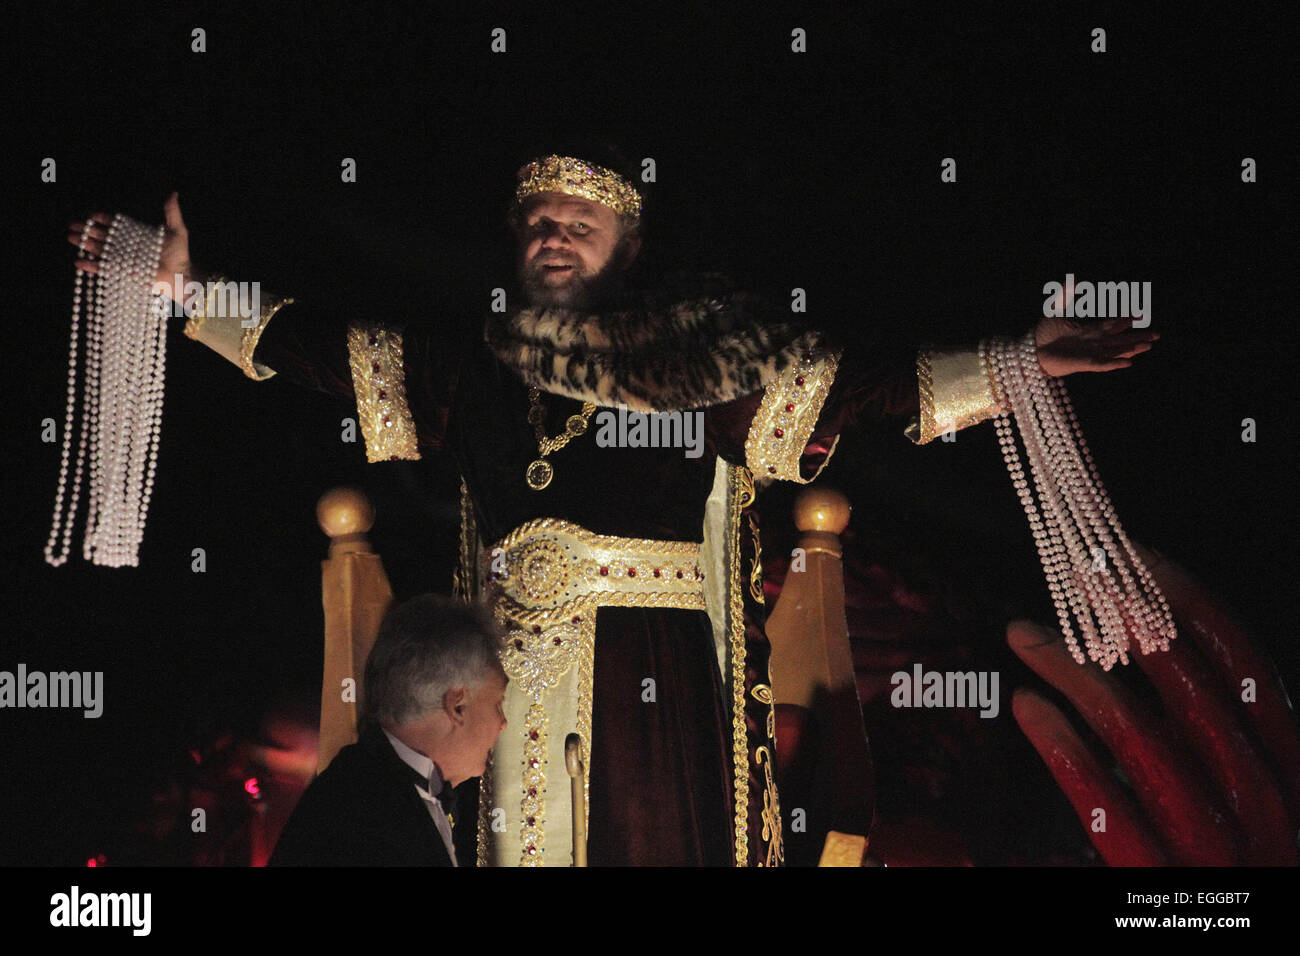 New Orleans, LOUISIANA, USA. 15th Feb, 2015. Actor John C. Reilly reigns as Bacchus XLVI during the Krewe of Bacchus Stock Photo